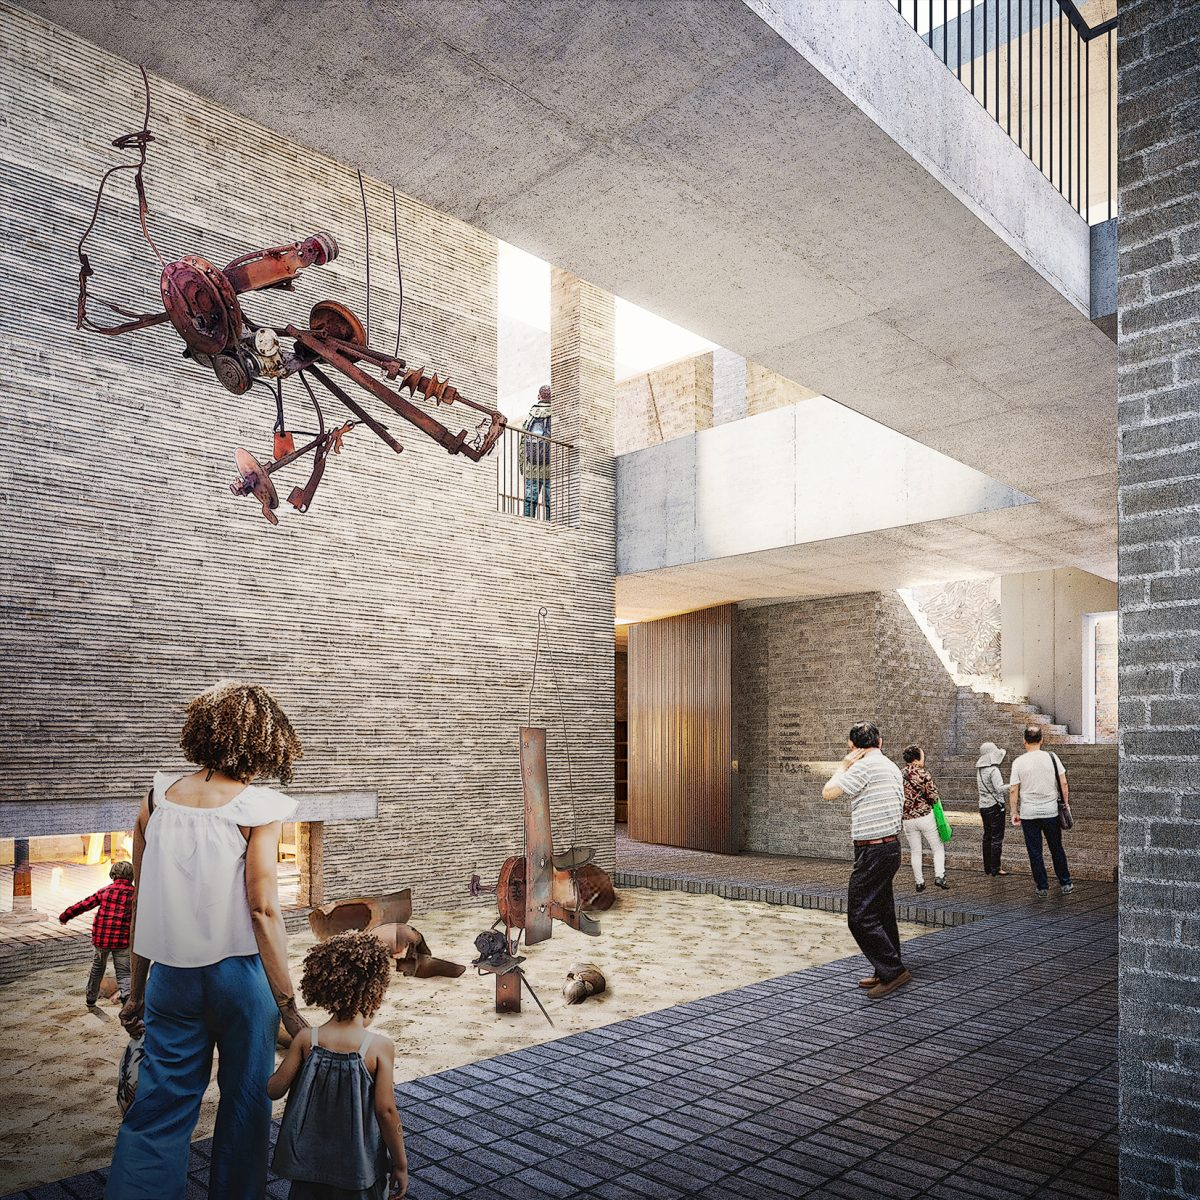 There is a large lightwell to the centre of the new extension to allow light into the building. As the site is confined by multiple party walls, the internal courtyard floods the area with light and presents itself as a flexible function space.